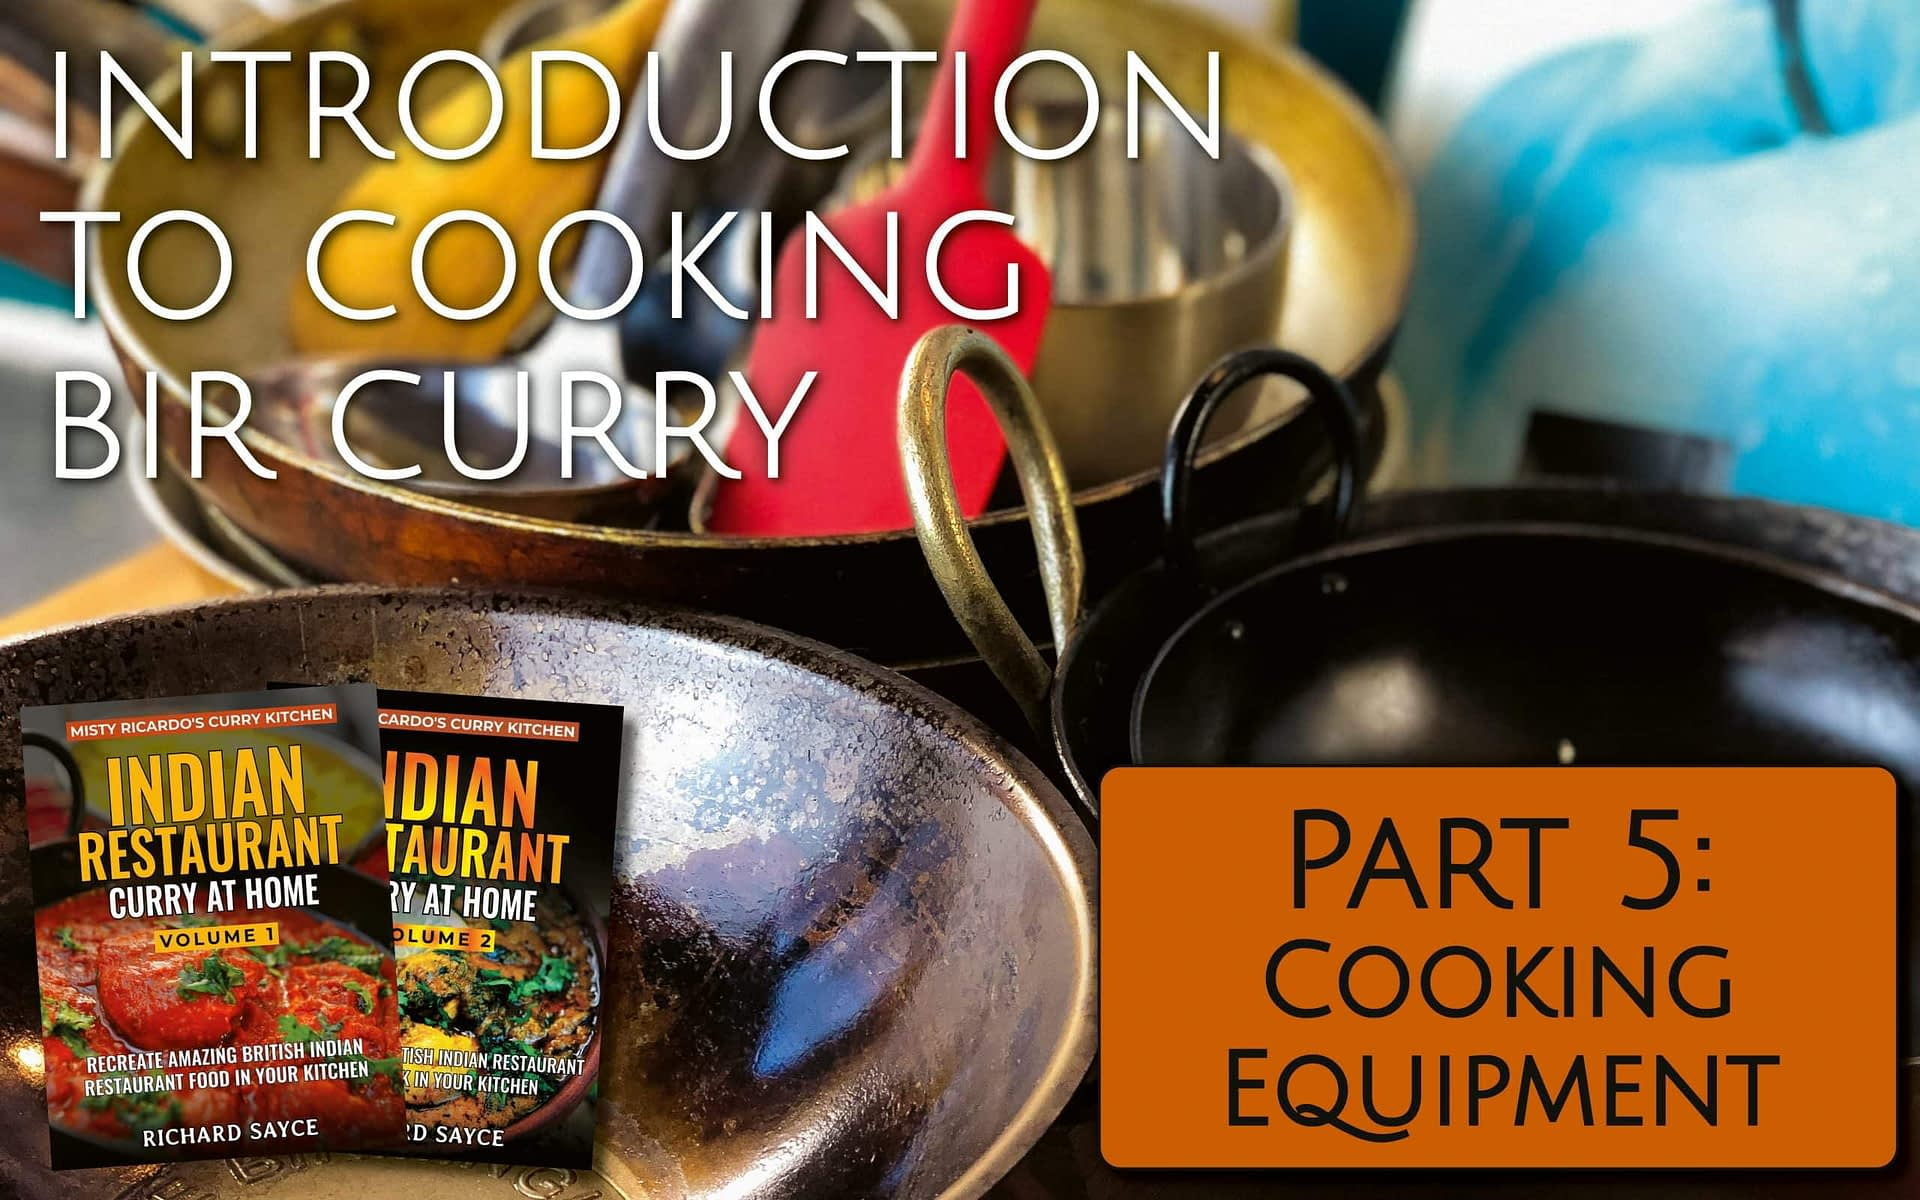 Curry Cooking Equipment